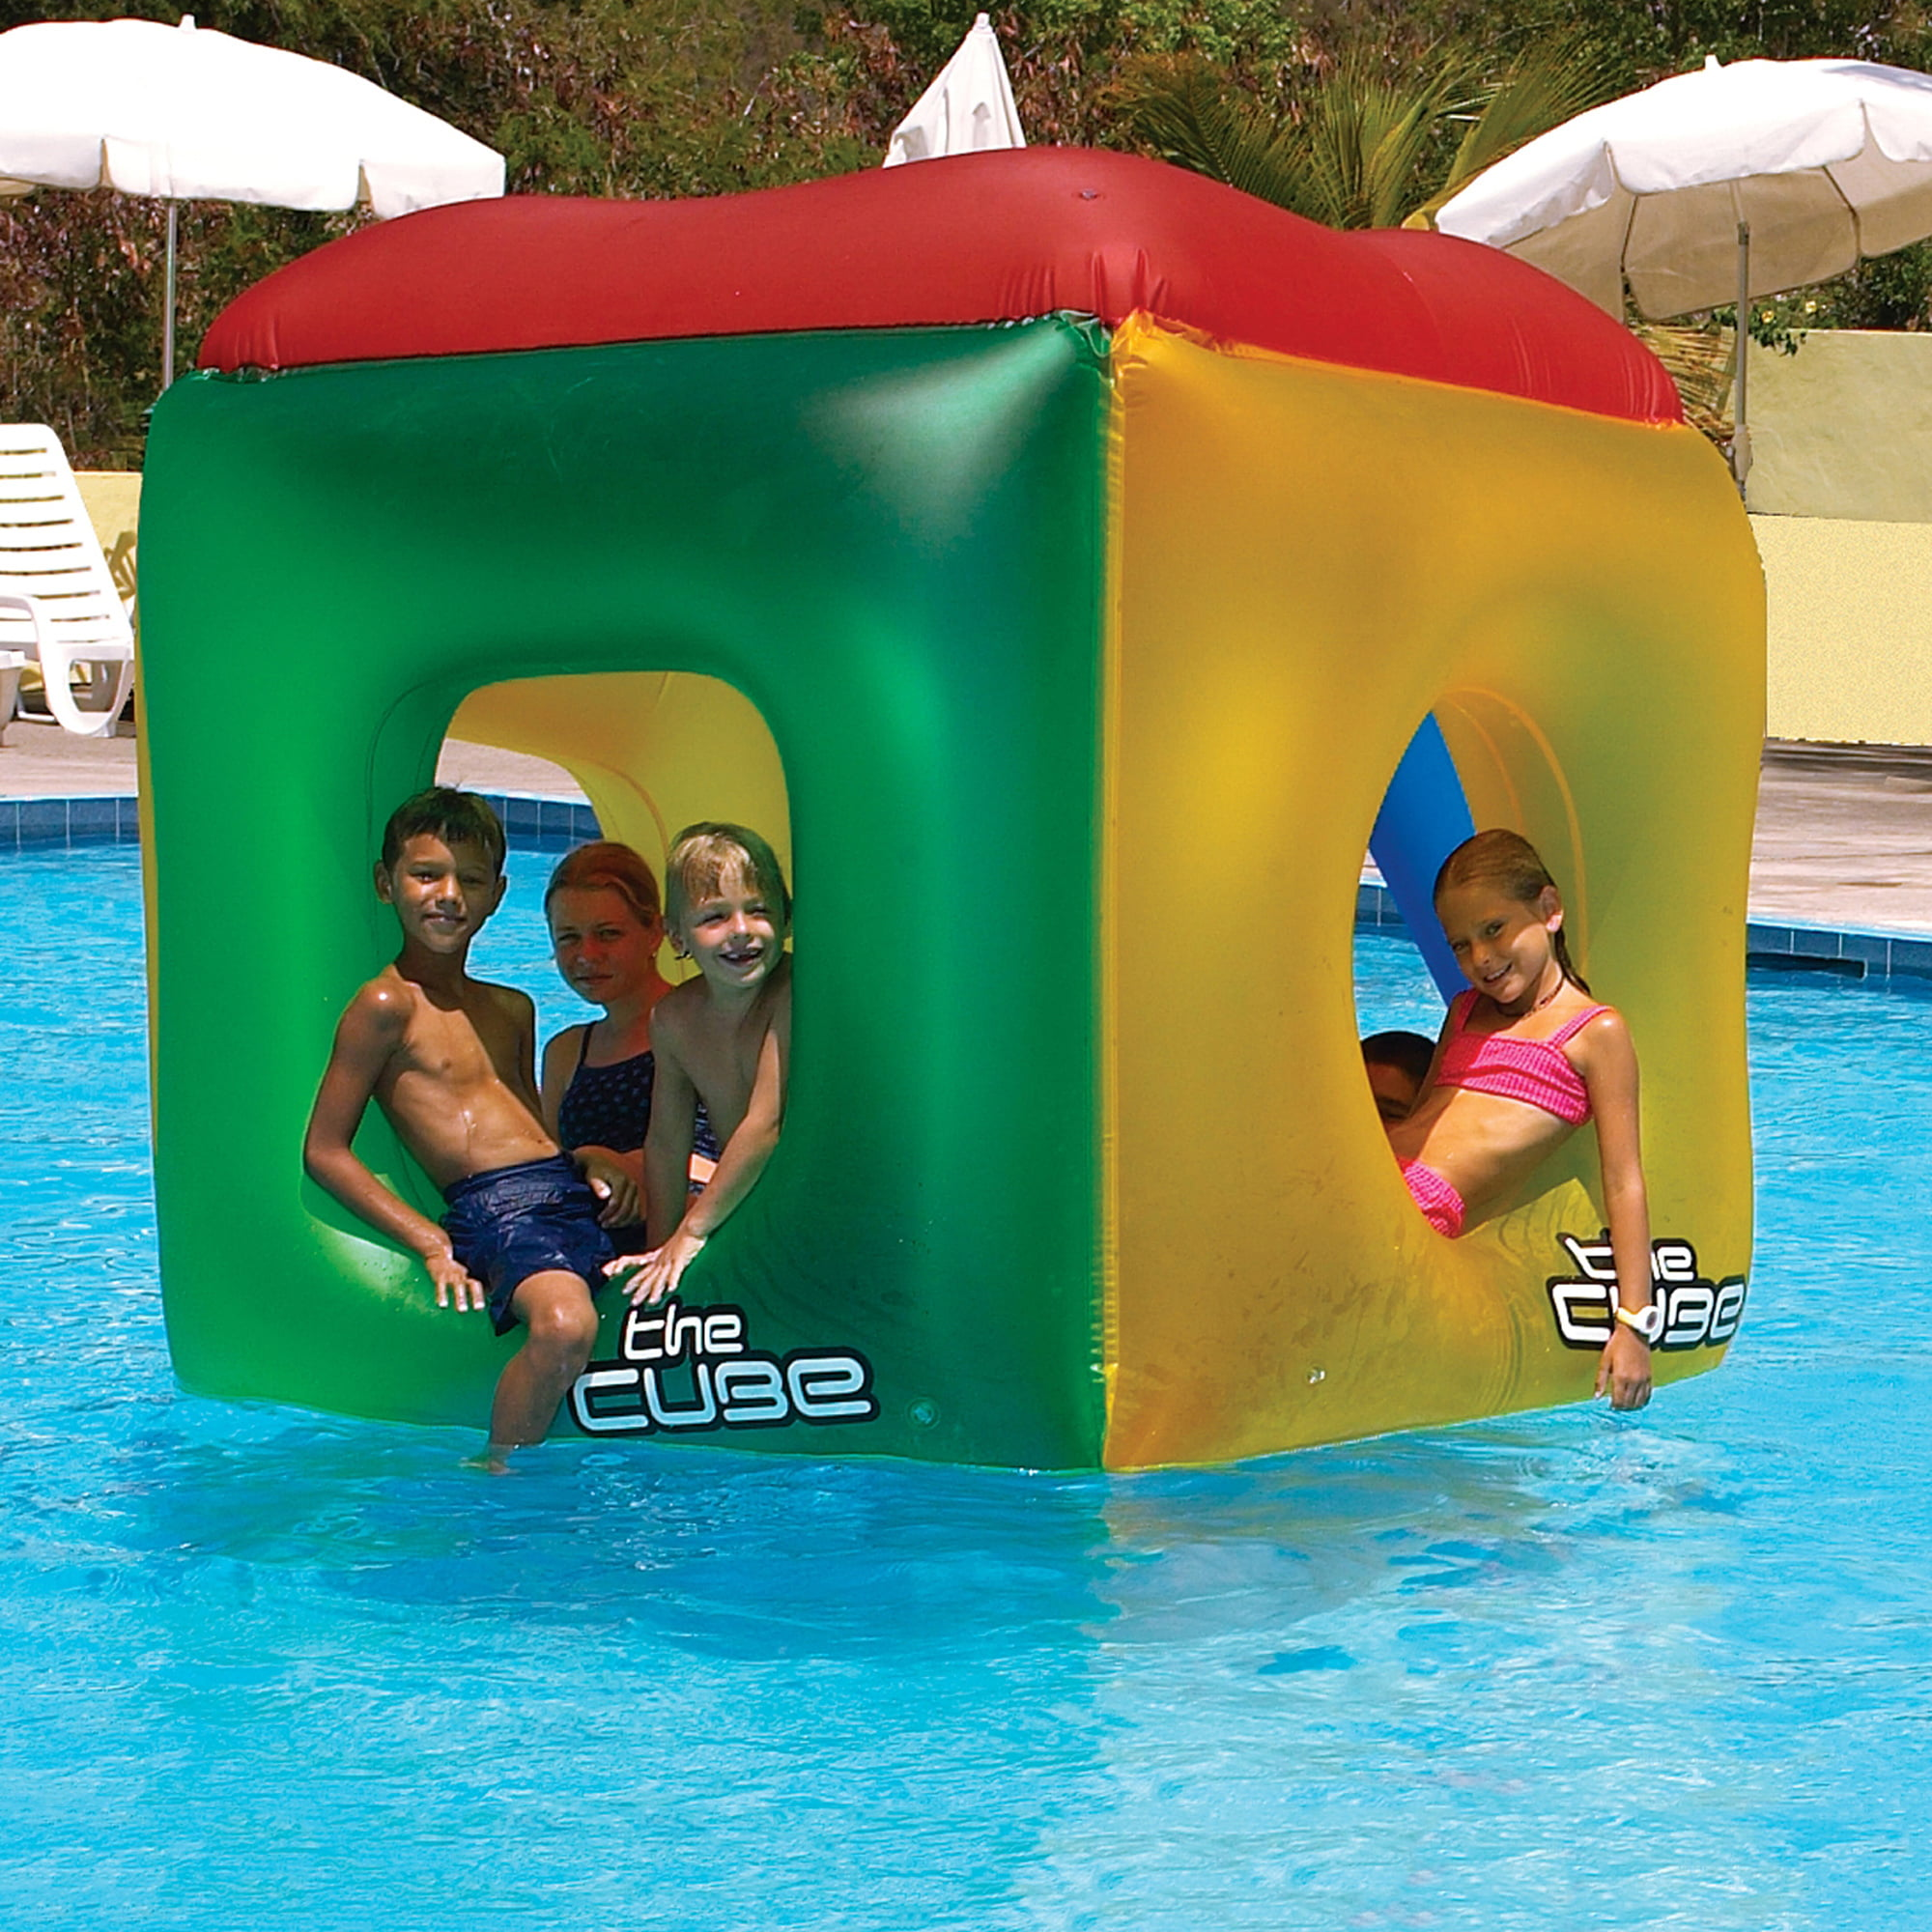 Swimline The Cube Inflatable Pool Toy by Blue Wave